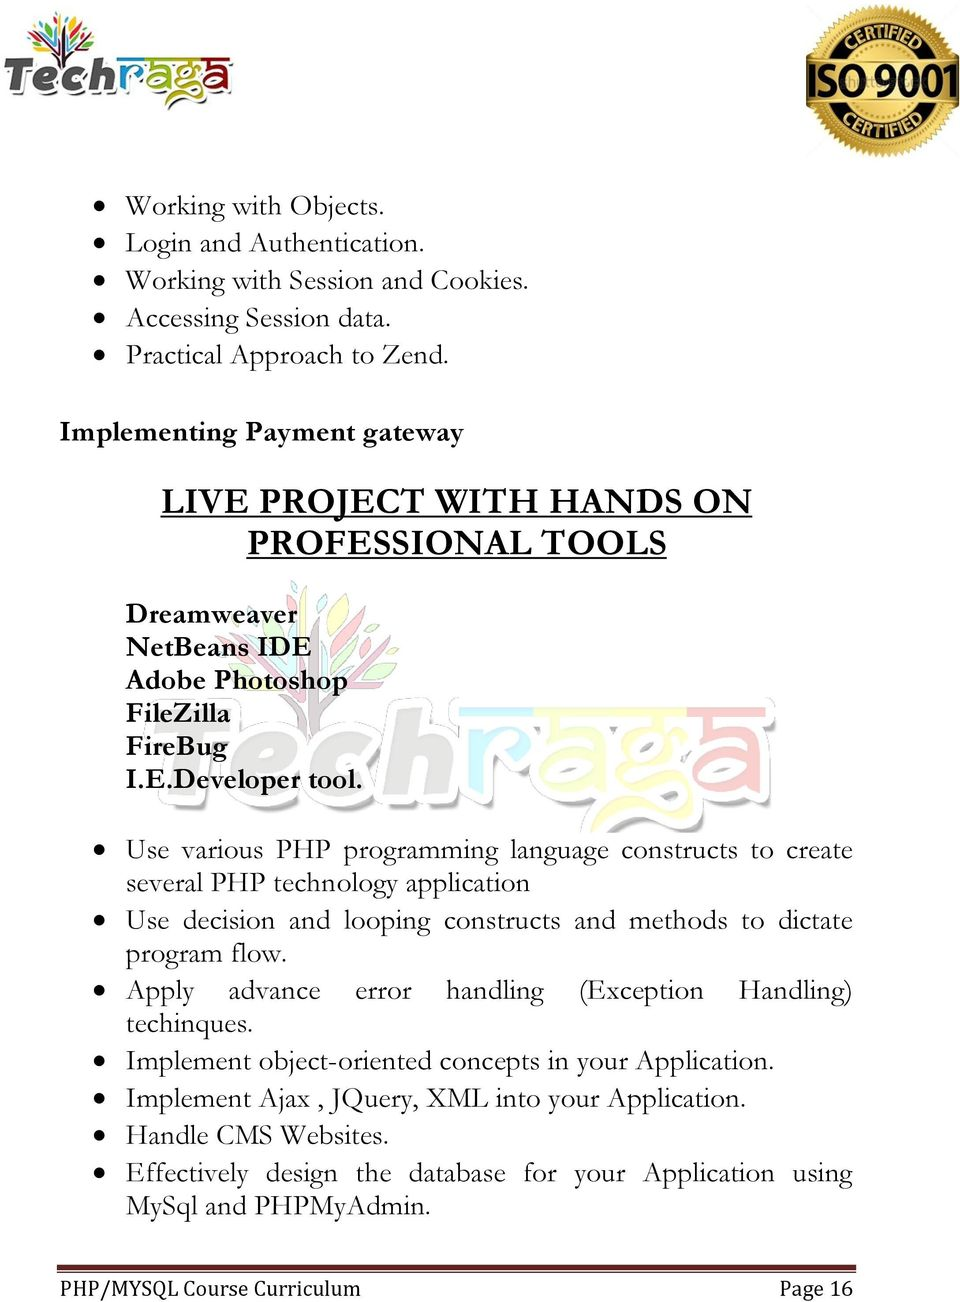 Use various PHP programming language constructs to create several PHP technology application Use decision and looping constructs and methods to dictate program flow.